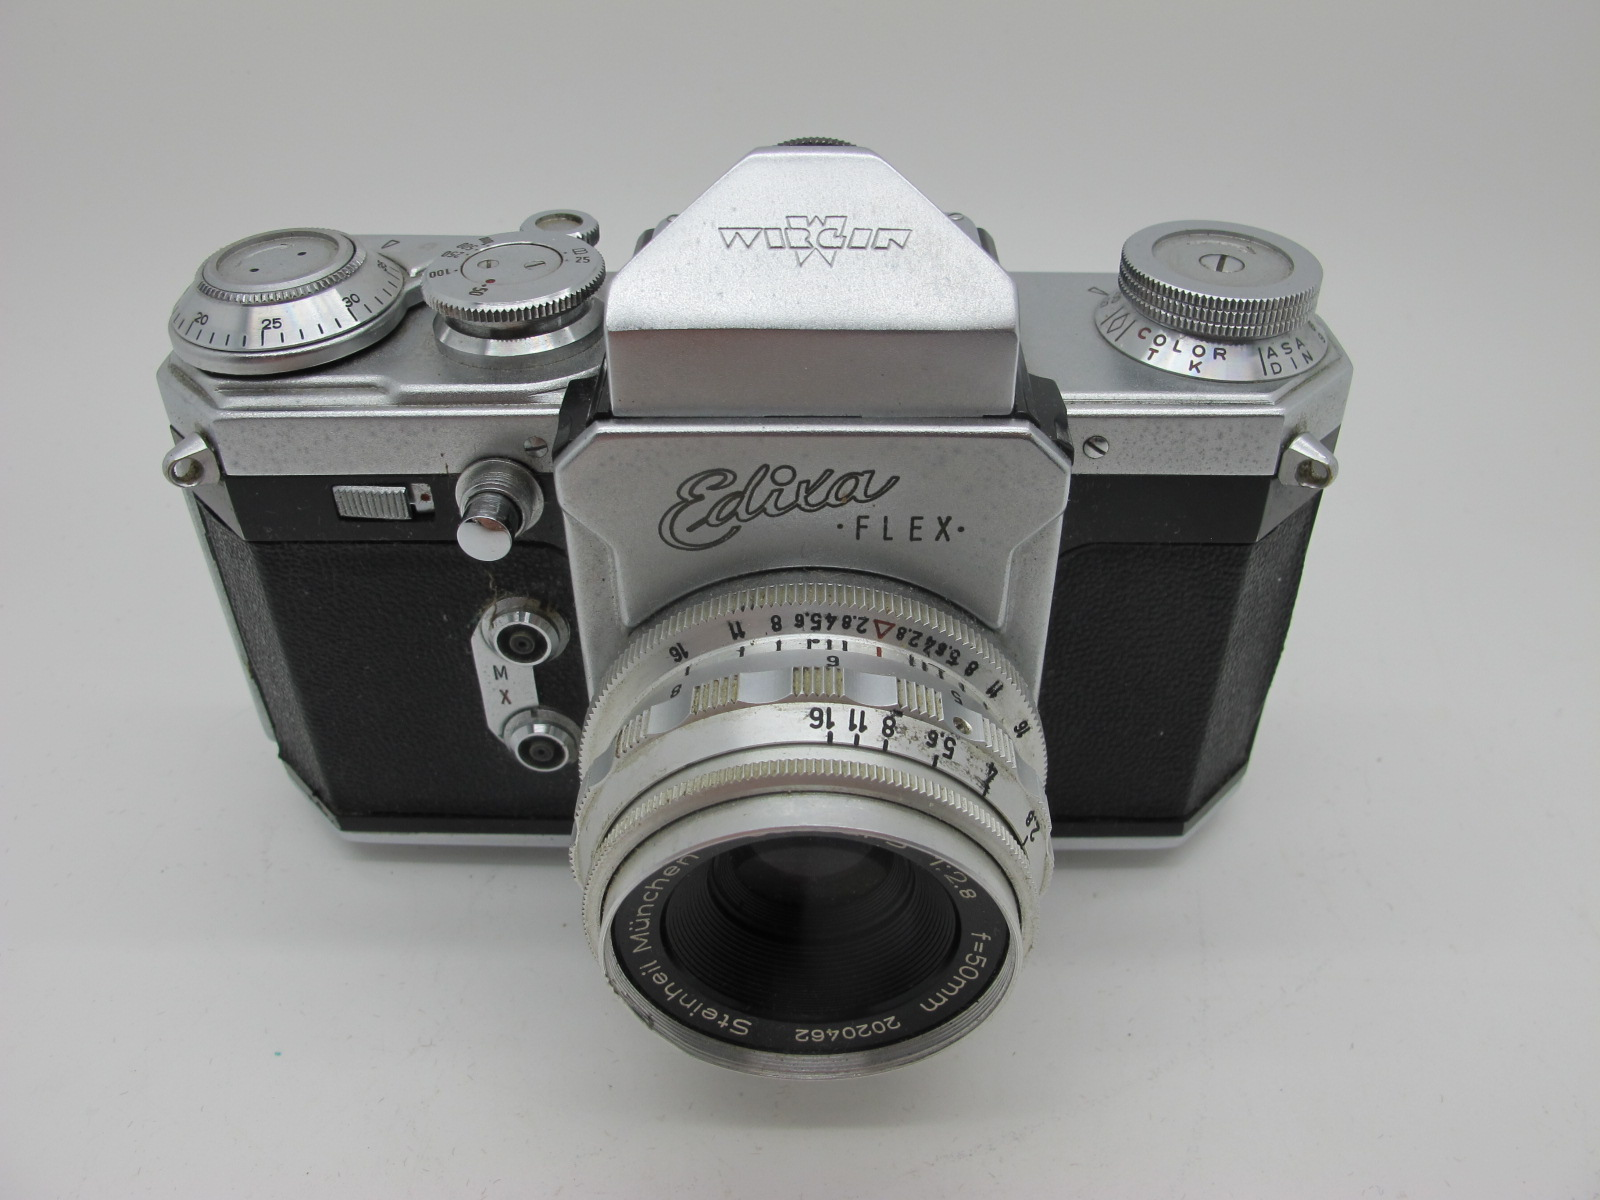 Saraber Goslar Finetta 88, Edika Flex, plus two other camera's in brown leather cases. (4) - Image 5 of 13